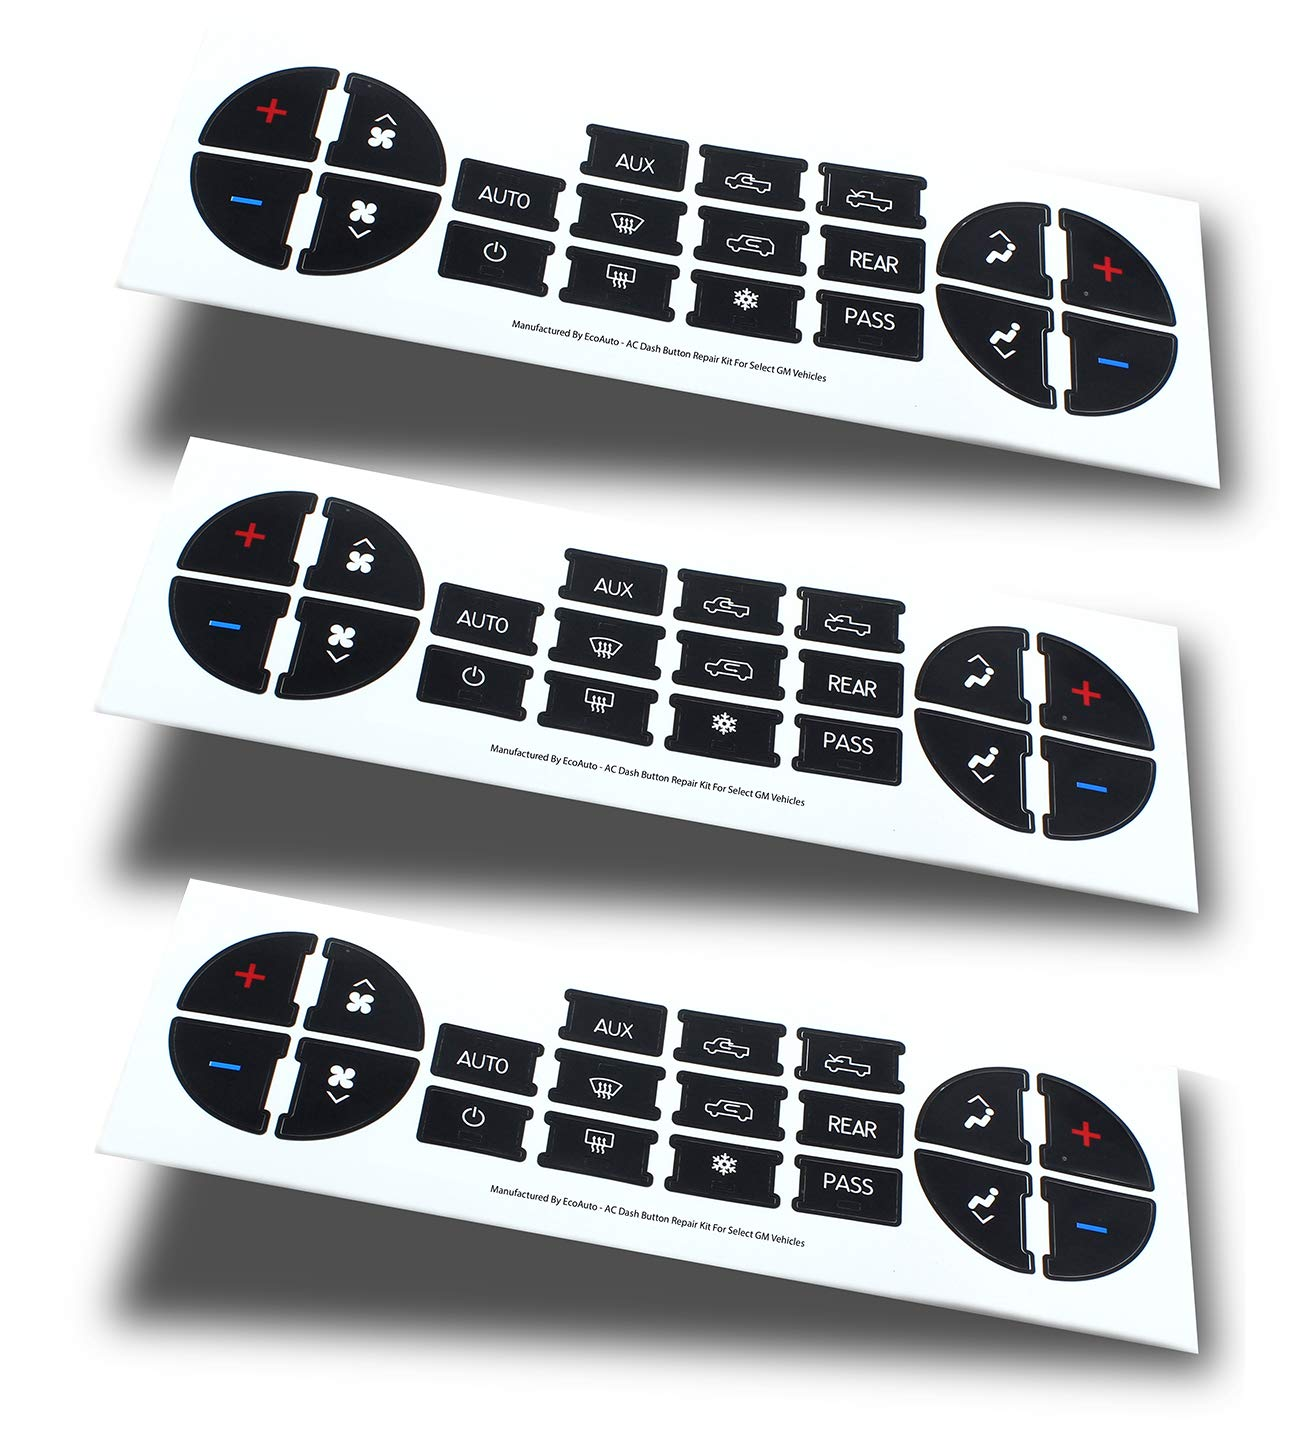 AC Dash Button Replacement Decal Stickers (Pack of 3) for Select GM Vehicles - AC Control & Radio Button Sticker Repair Kit - Fix Ruined Faded A/C Controls